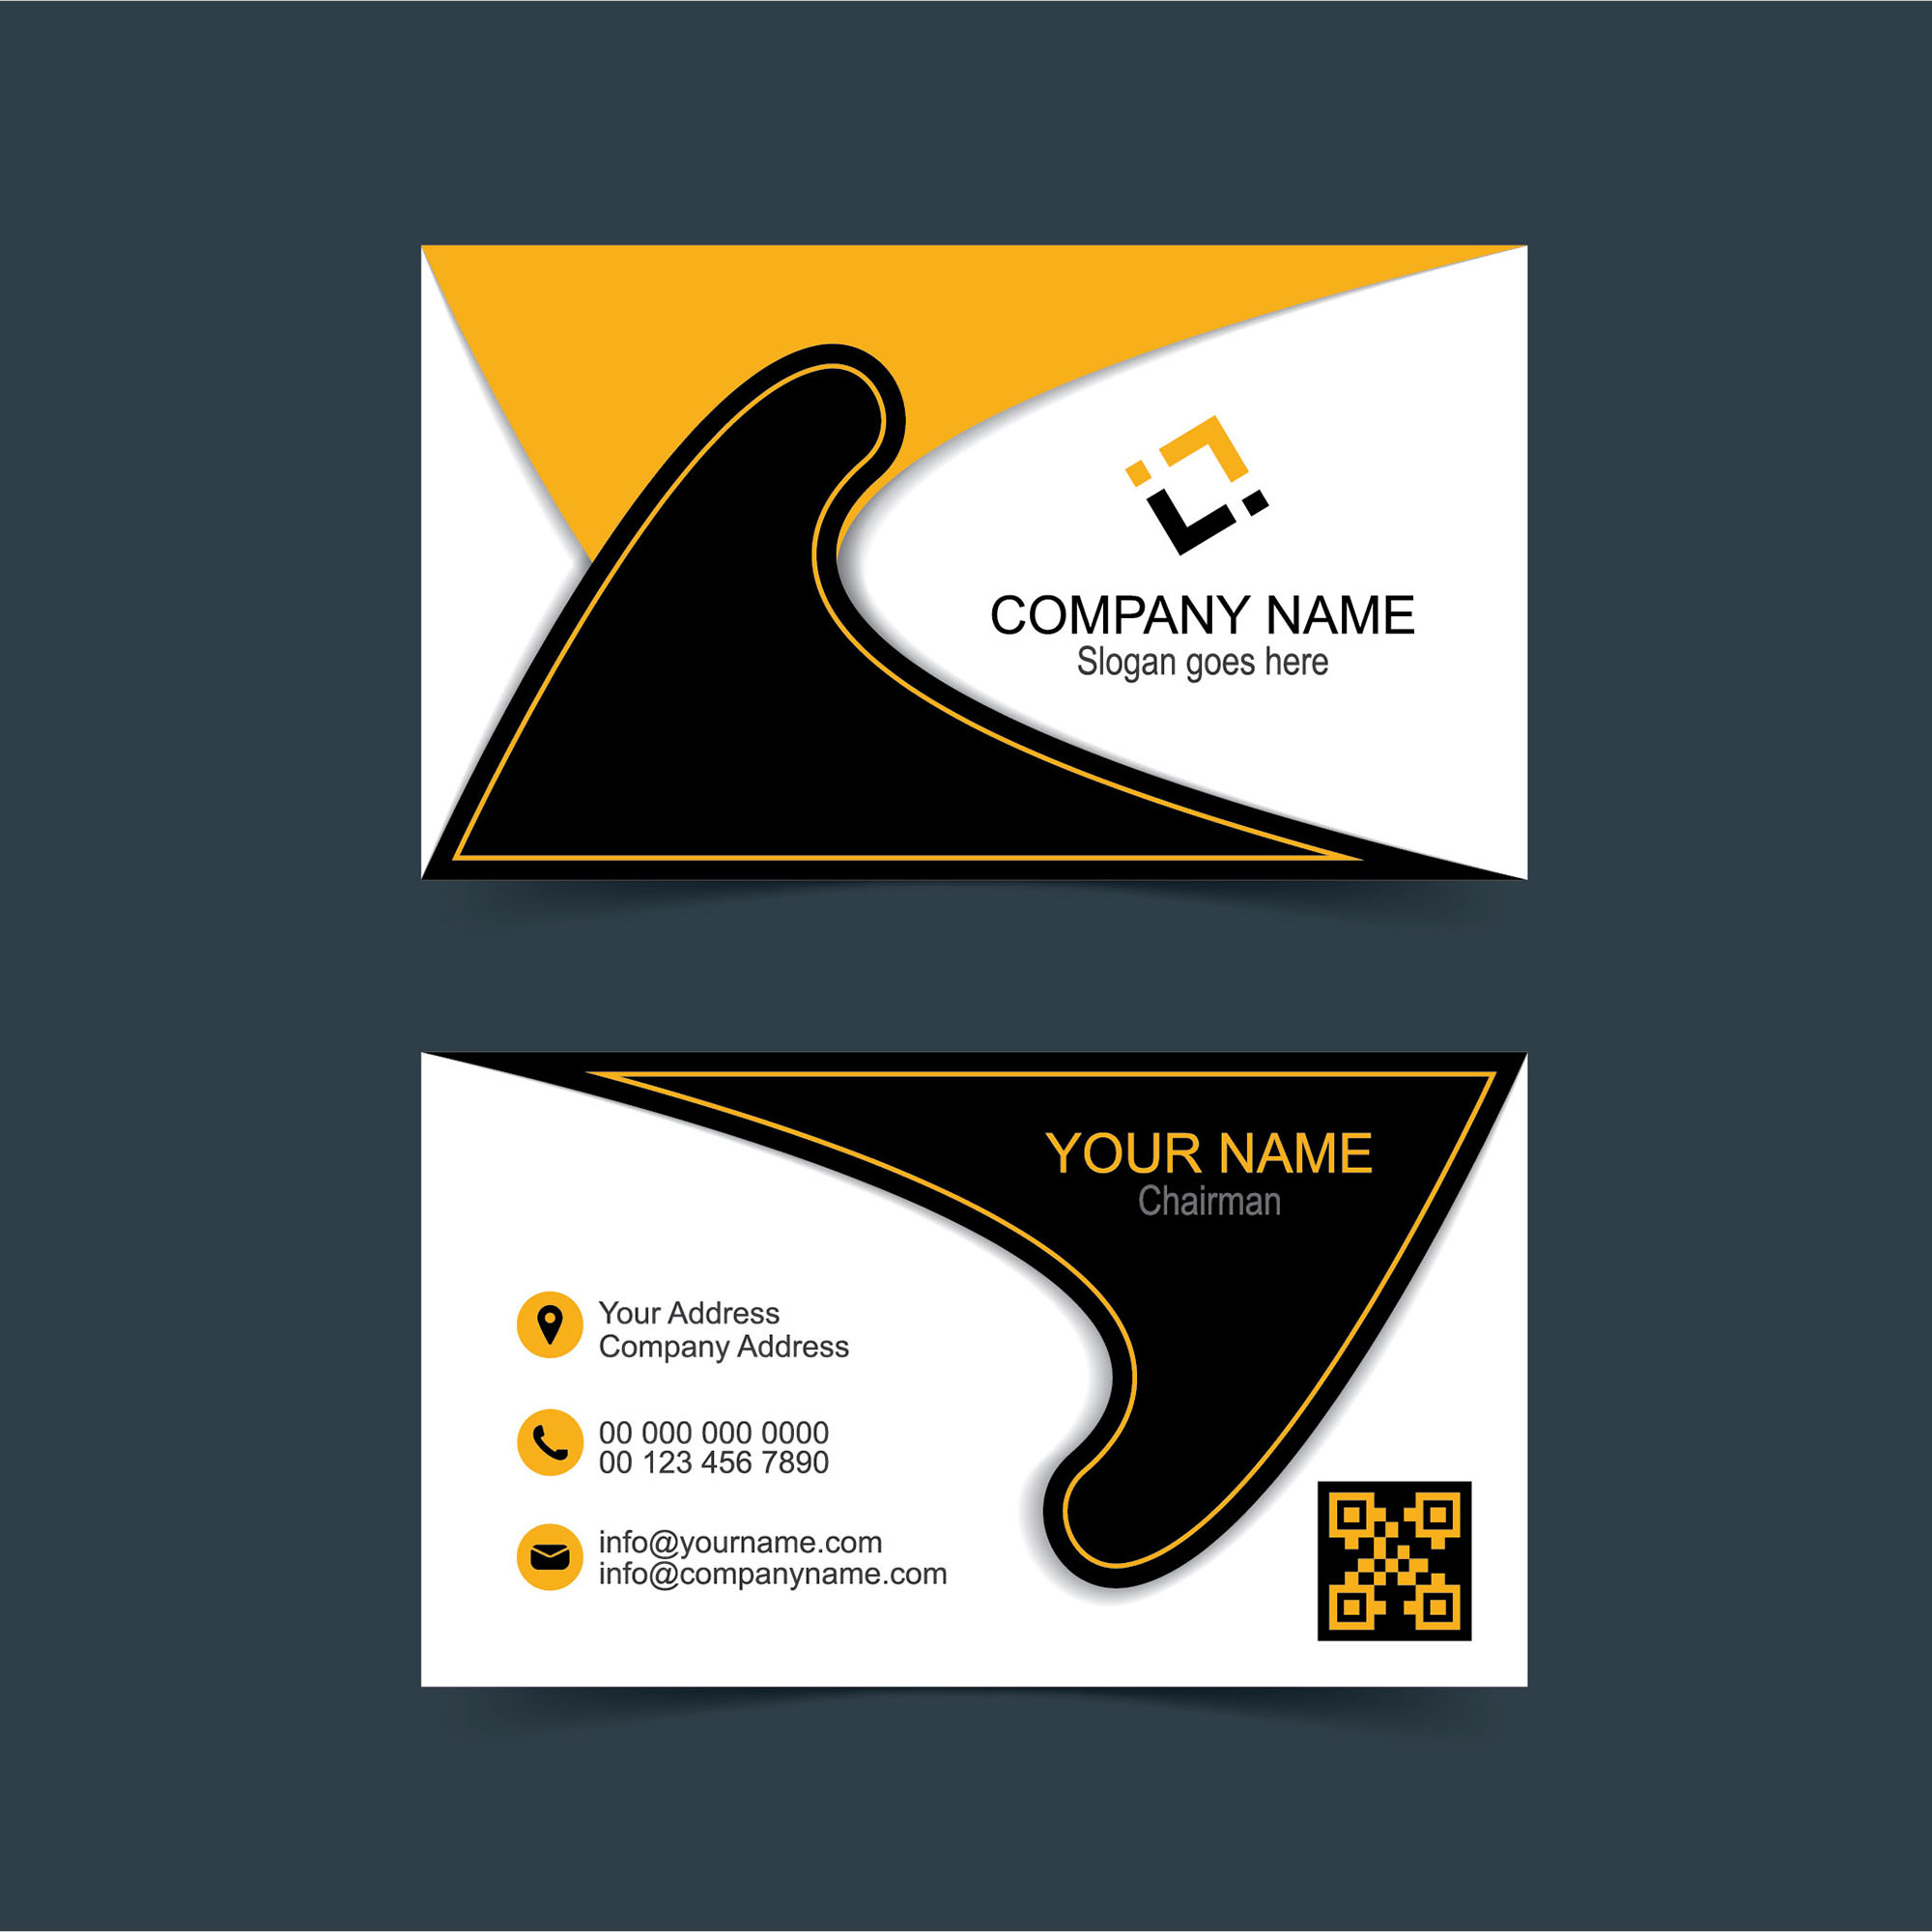 Professional designer business card free download wisxi business card business cards business card design business card template design templates colourmoves